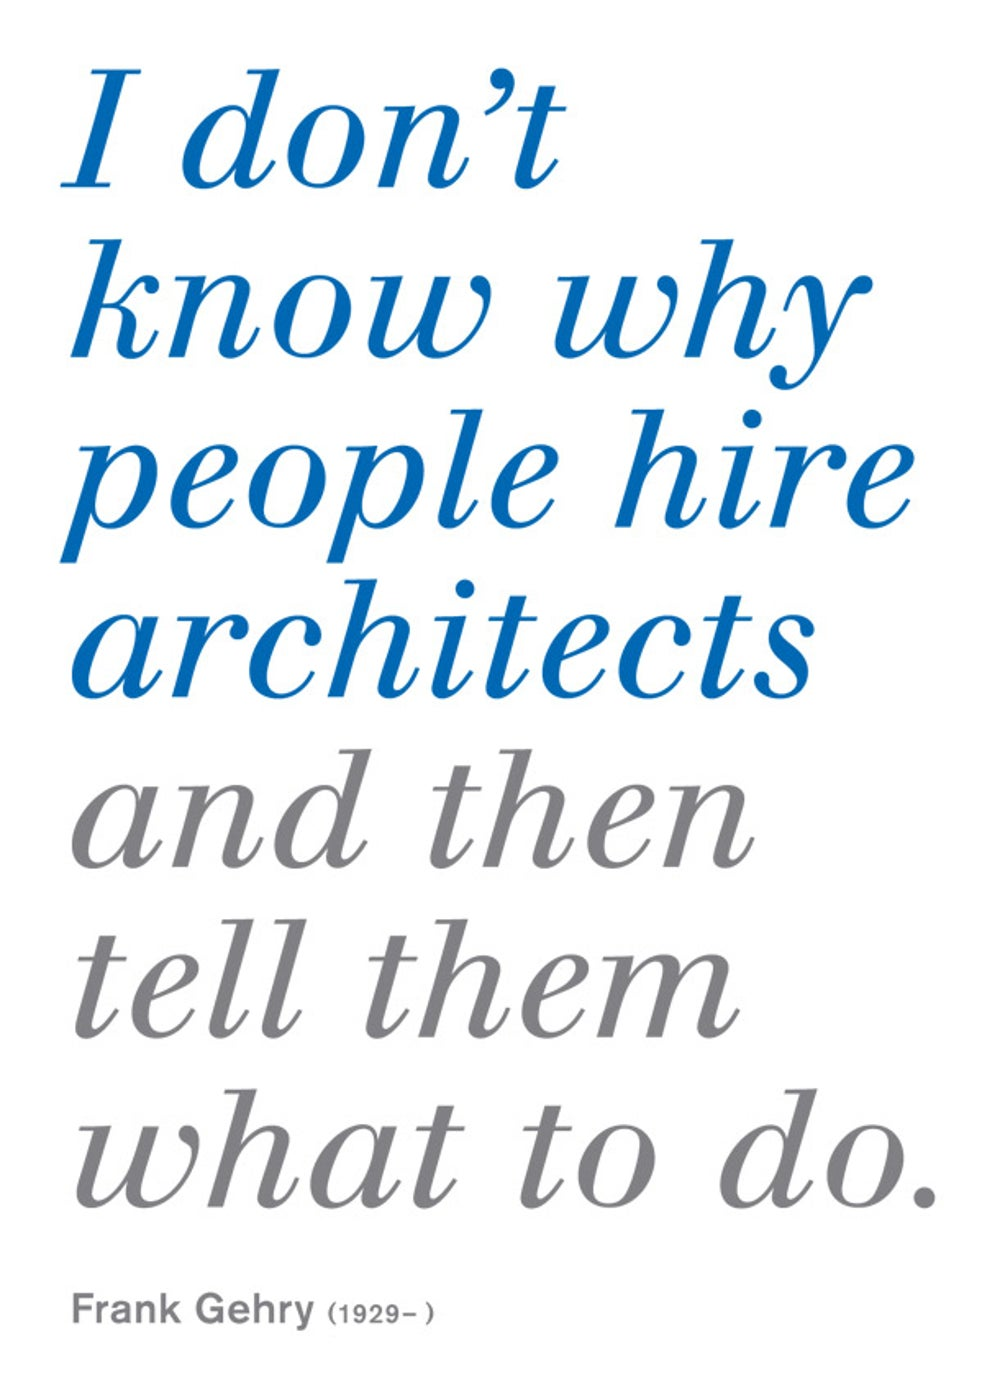 Frank Gehry on working with clients.